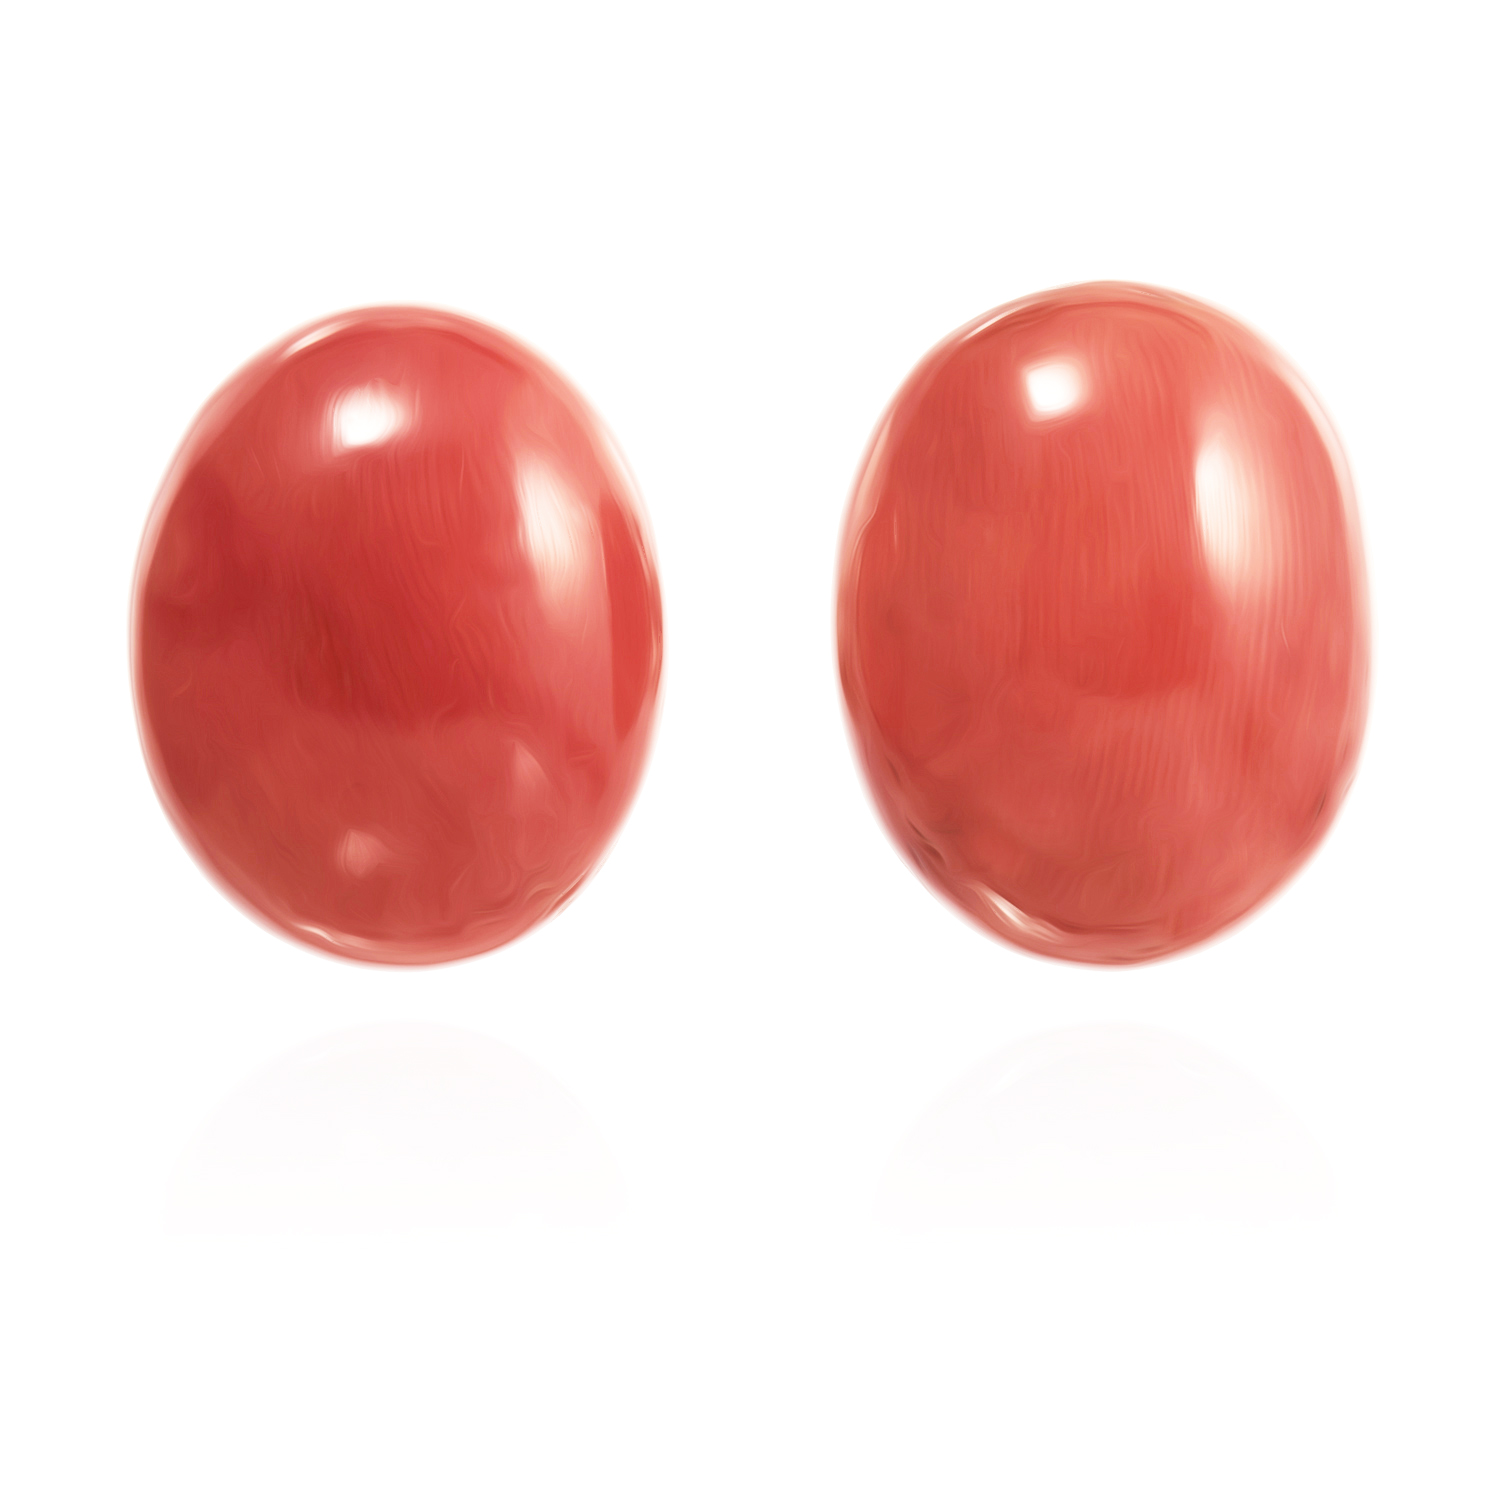 Los 20 - A PAIR OF CORAL BEAD CLIP EARRINGS each set with a large polished coral bead of 20.7mm and 19.6mm,